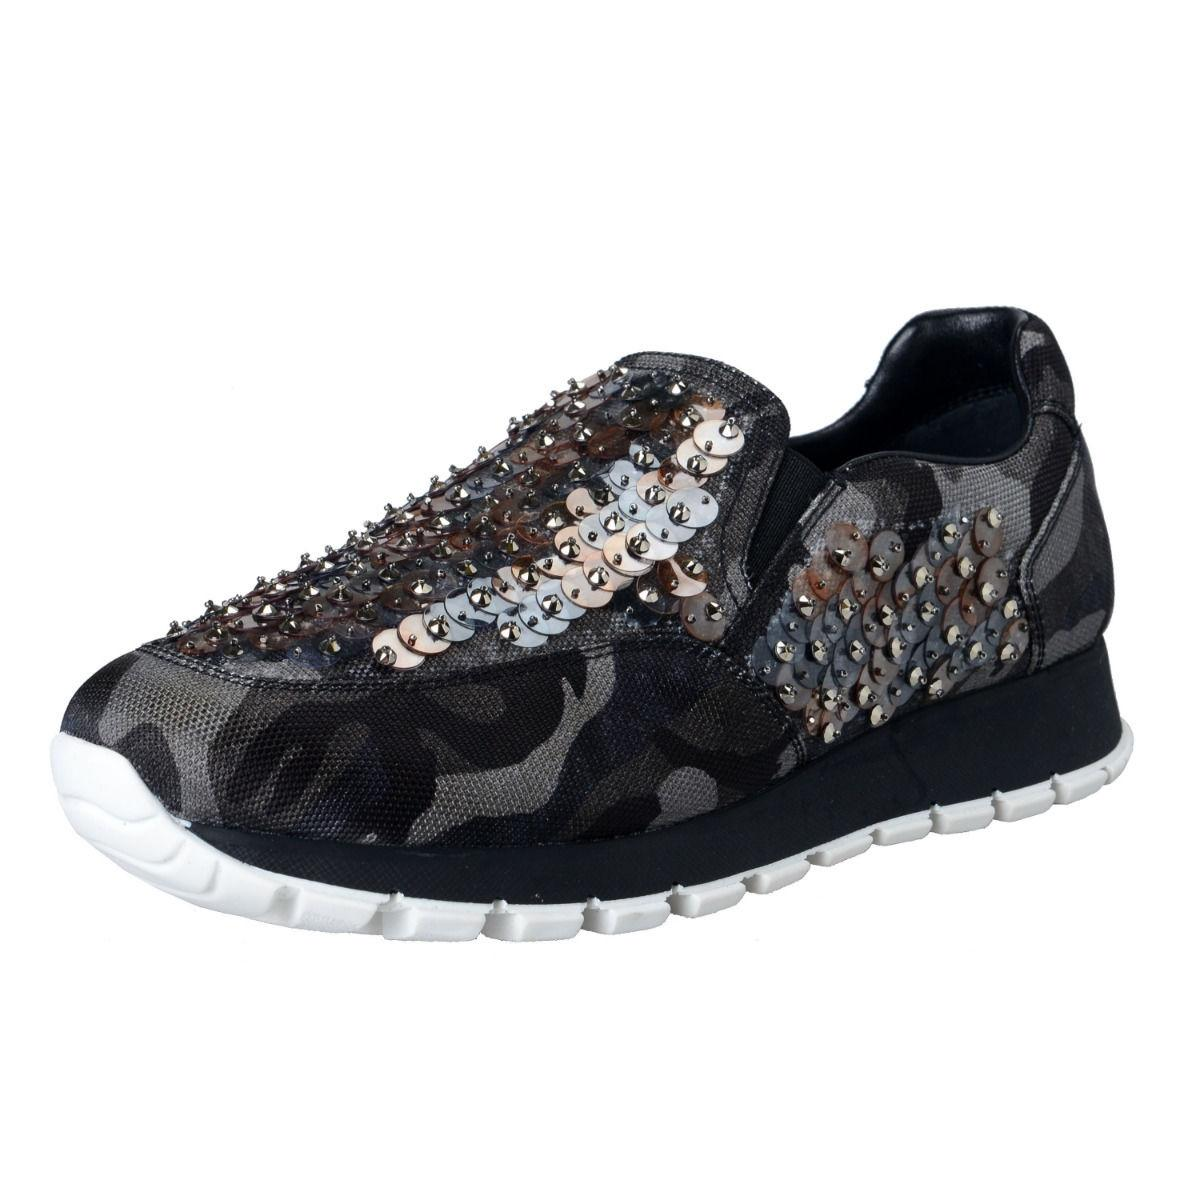 Prada Multi-color Women's Sequin Decorated Sneakers Moccasins Loafers Slip On Sneakers Decorated Size US 7 Regular (M, B) 968ebd